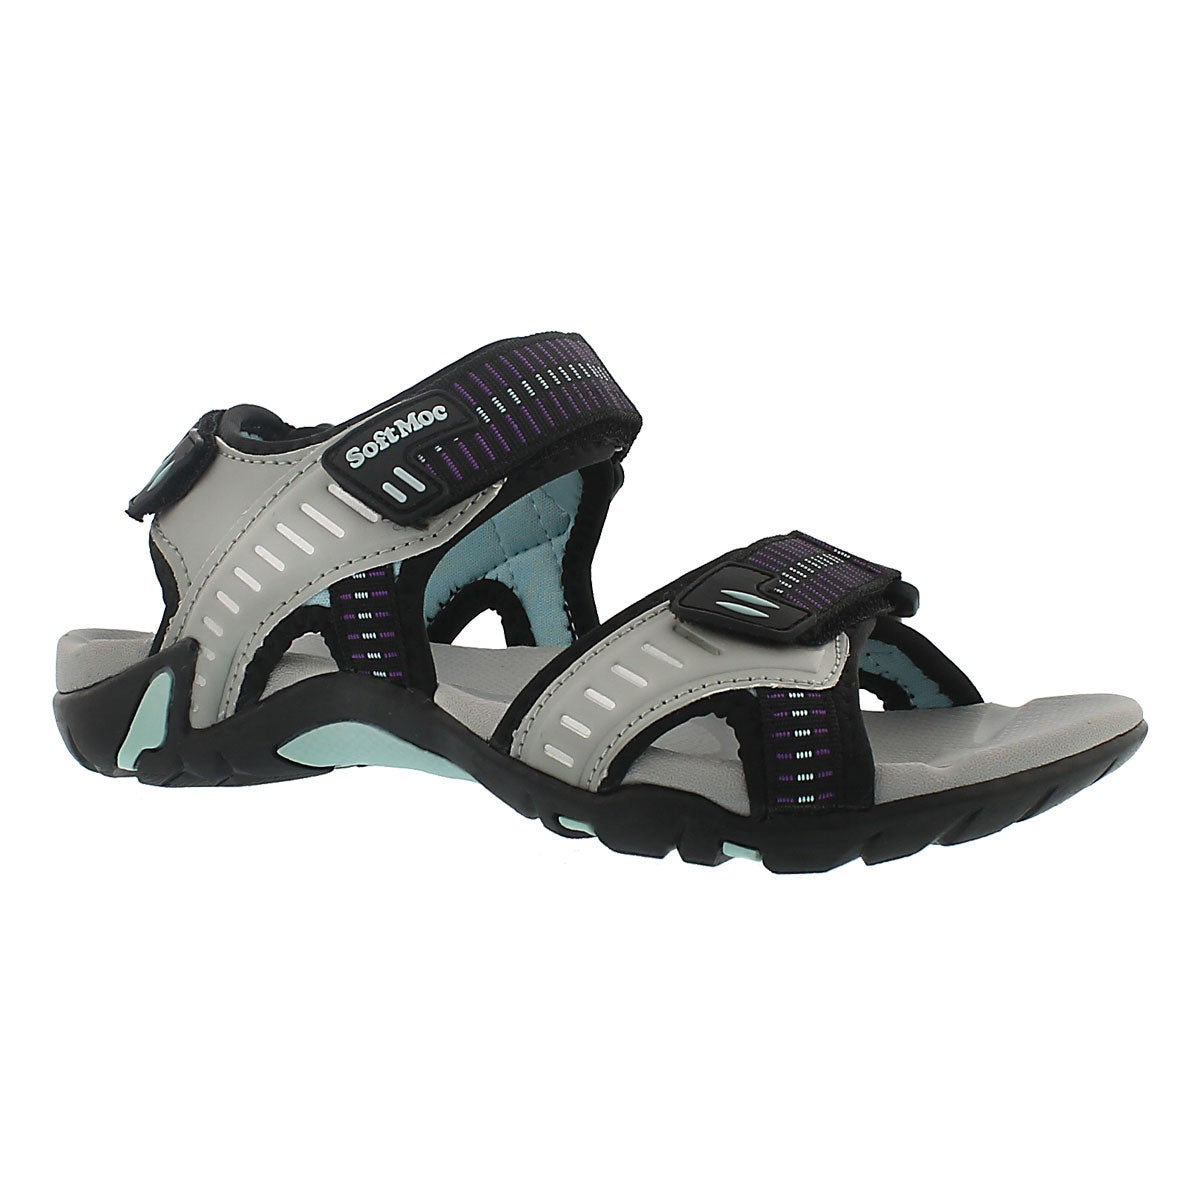 Women's KARA grey 3 strap sport sandals